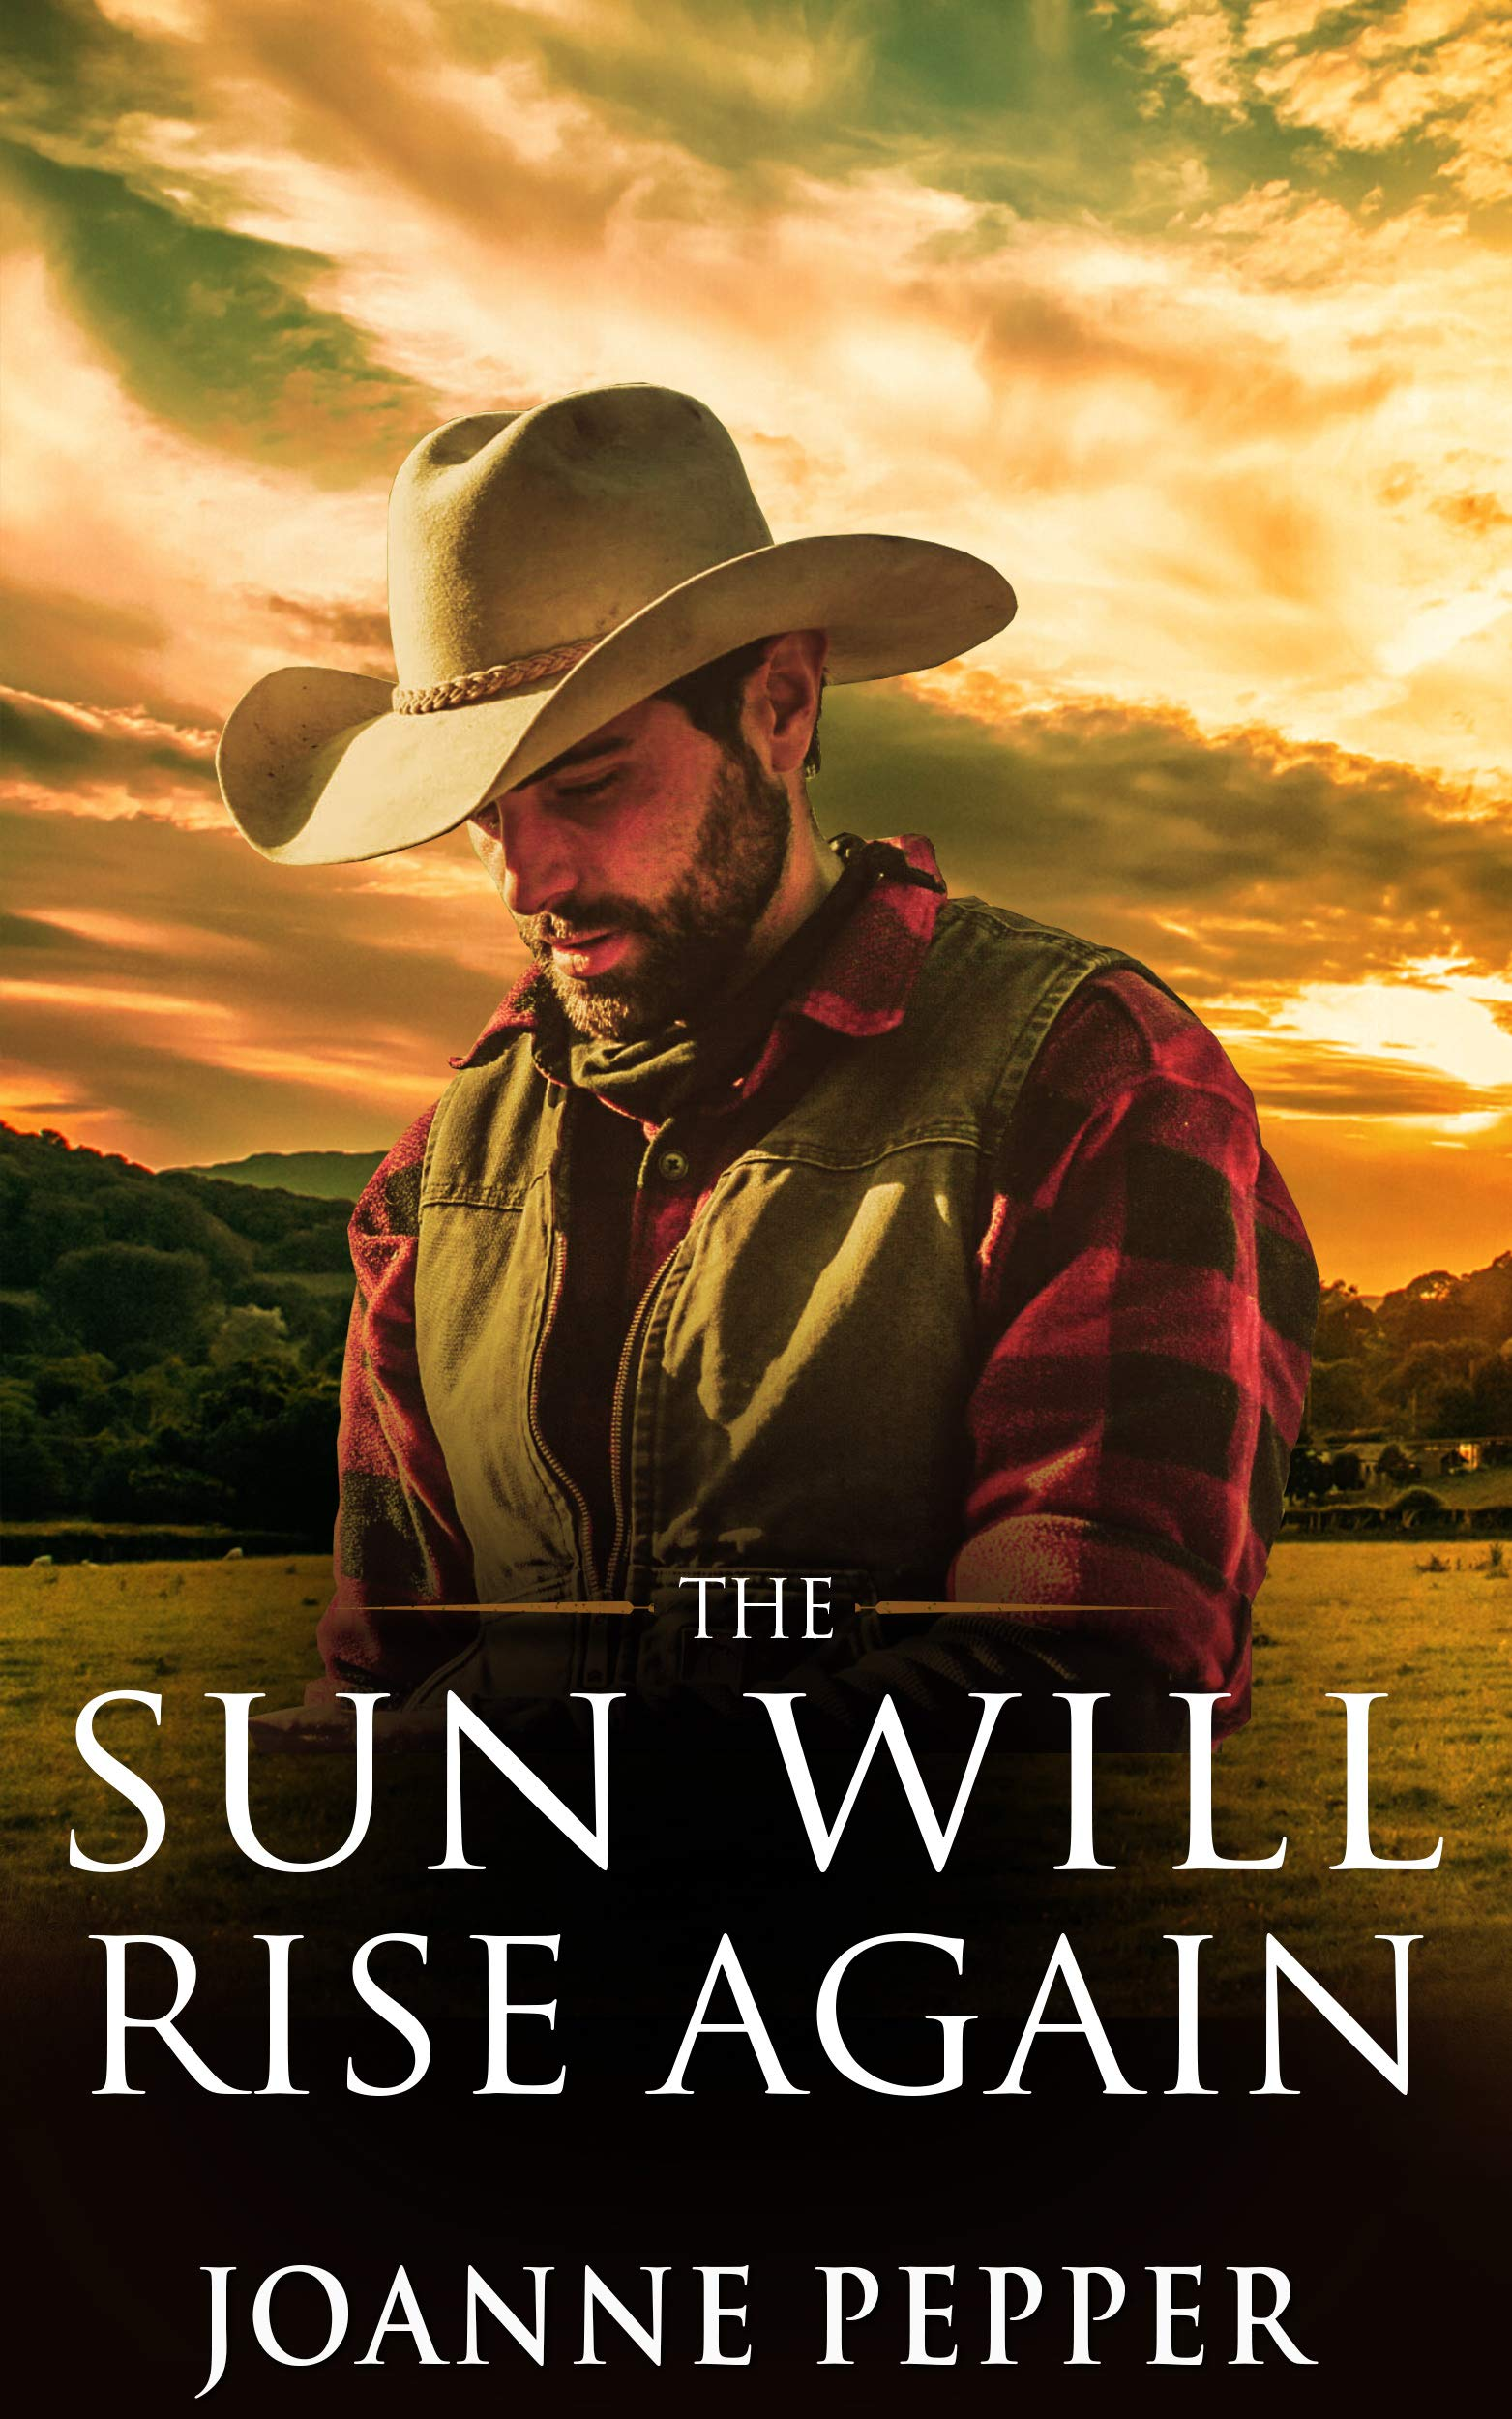 The Sun Will Rise Again - Book 1 of the Broken Bow Series